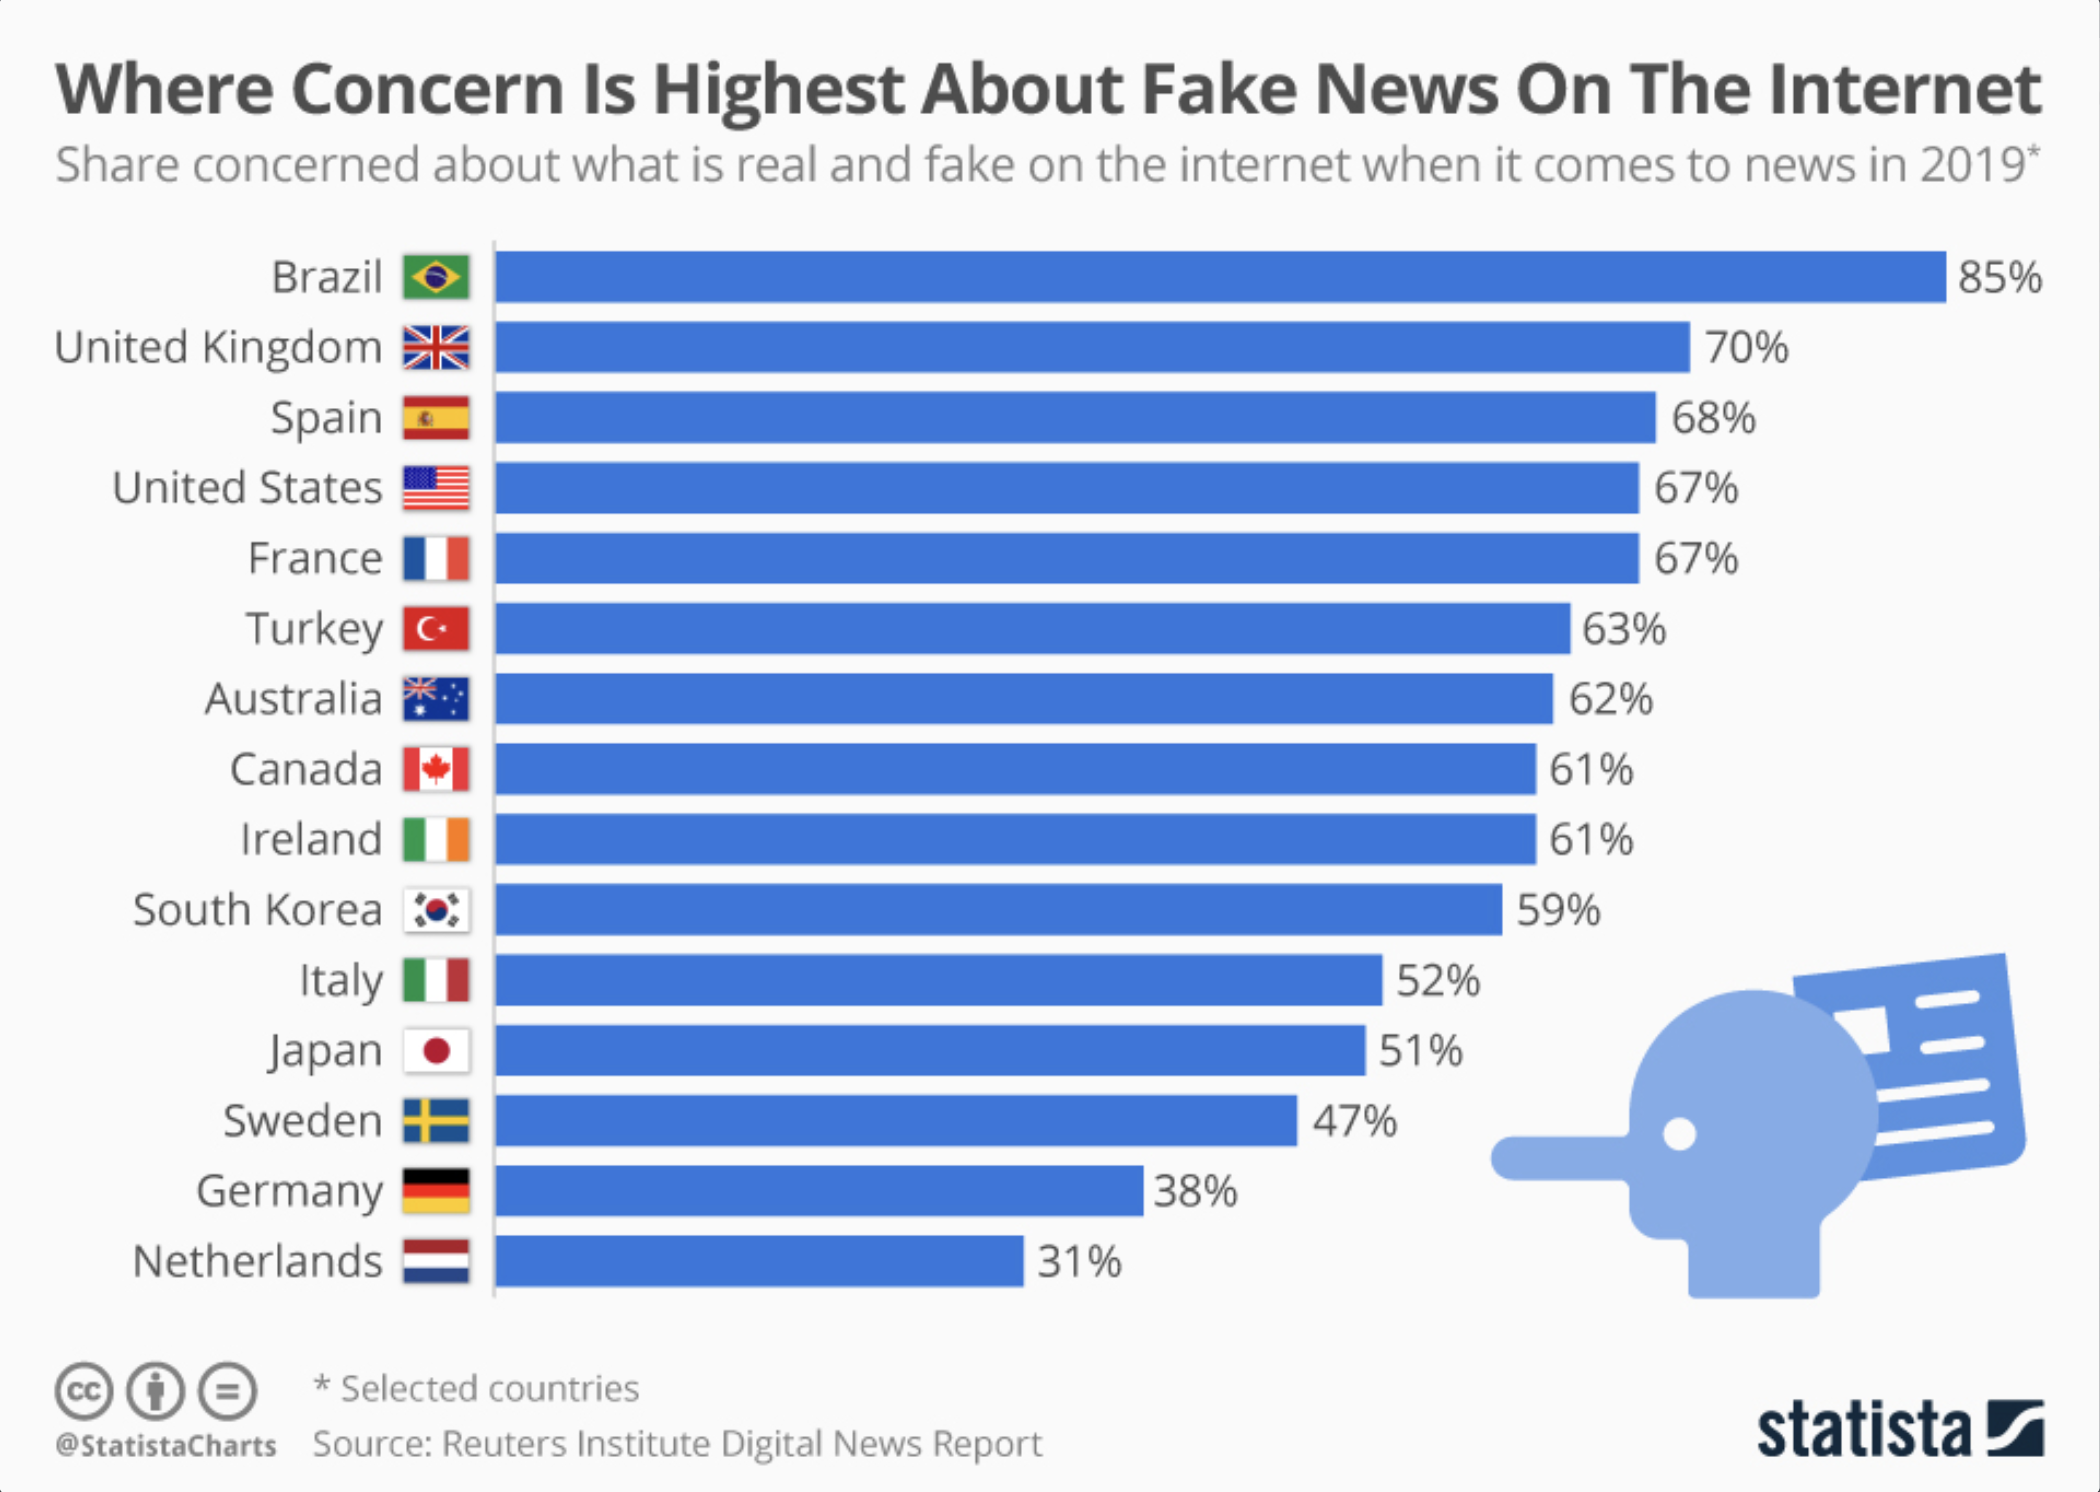 What do different countries' concerns about fake news online say about their media as a whole?